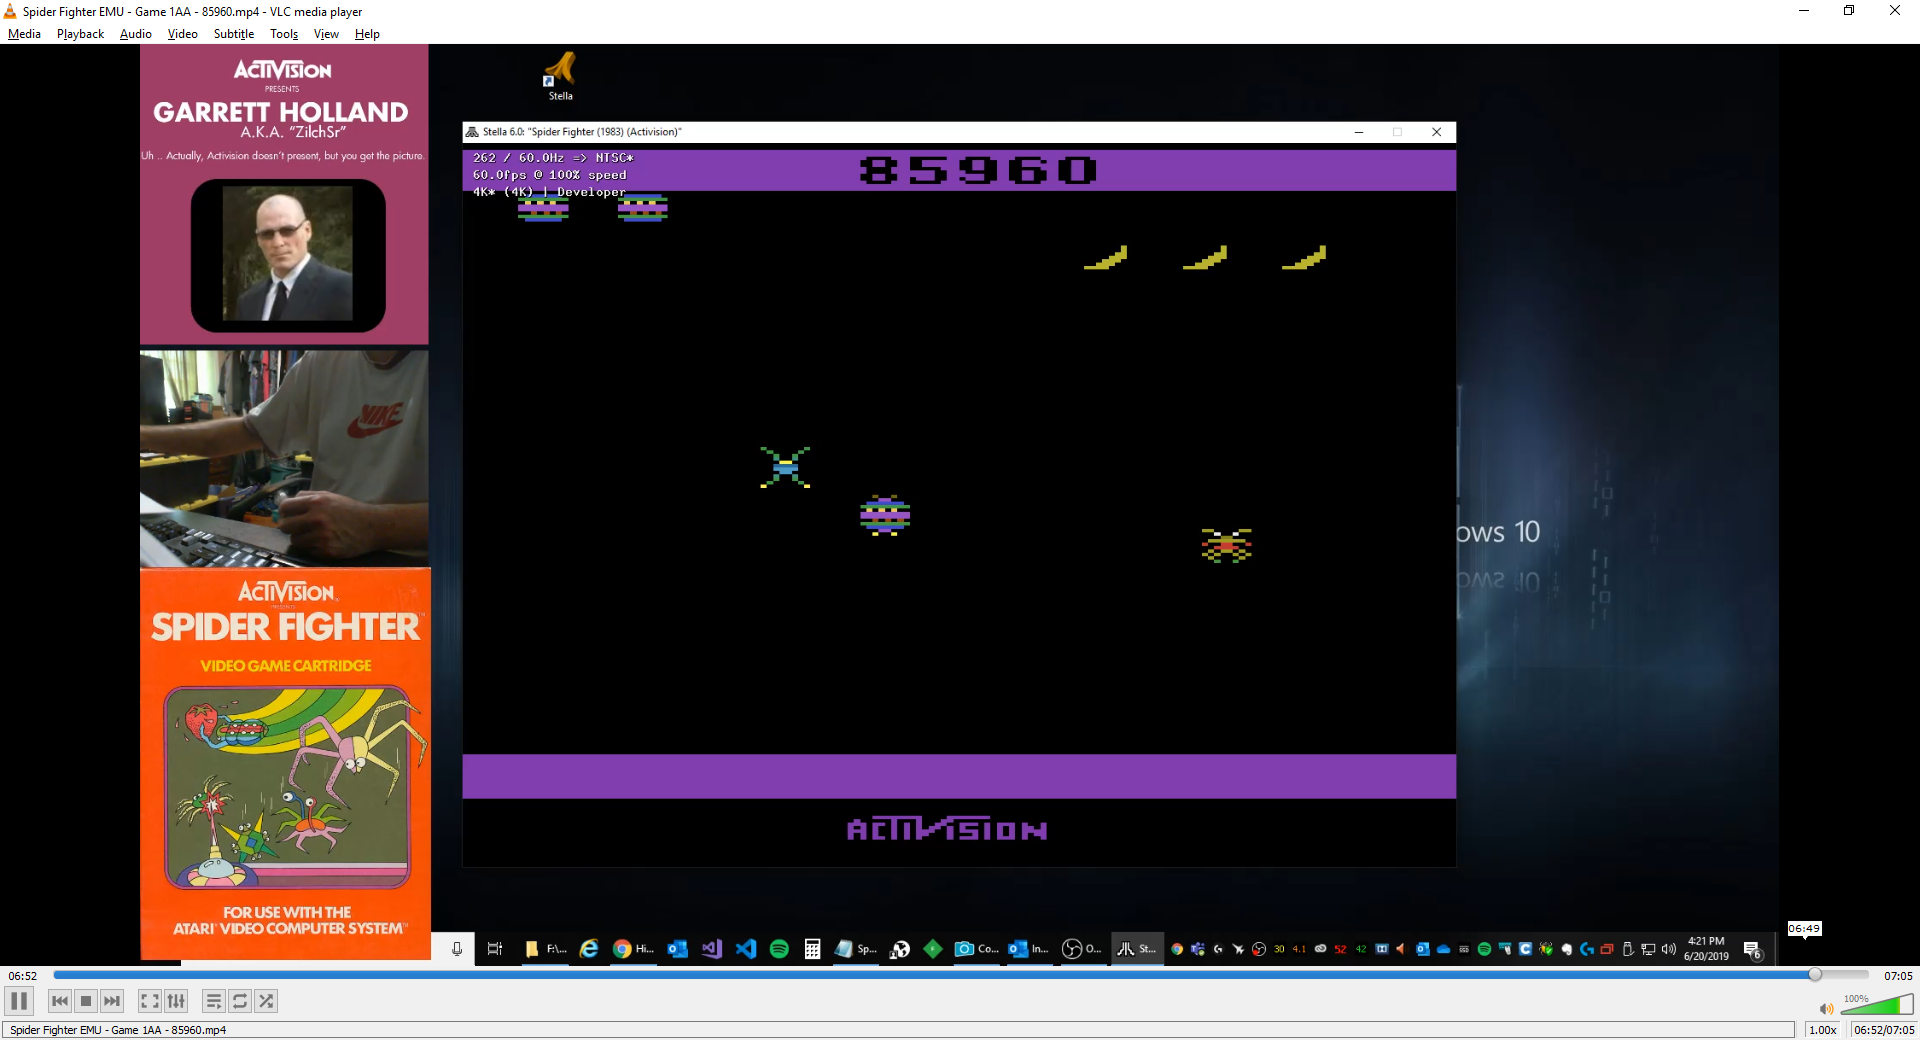 ZilchSr: Spider Fighter (Atari 2600 Emulated Expert/A Mode) 85,960 points on 2019-06-20 15:24:17